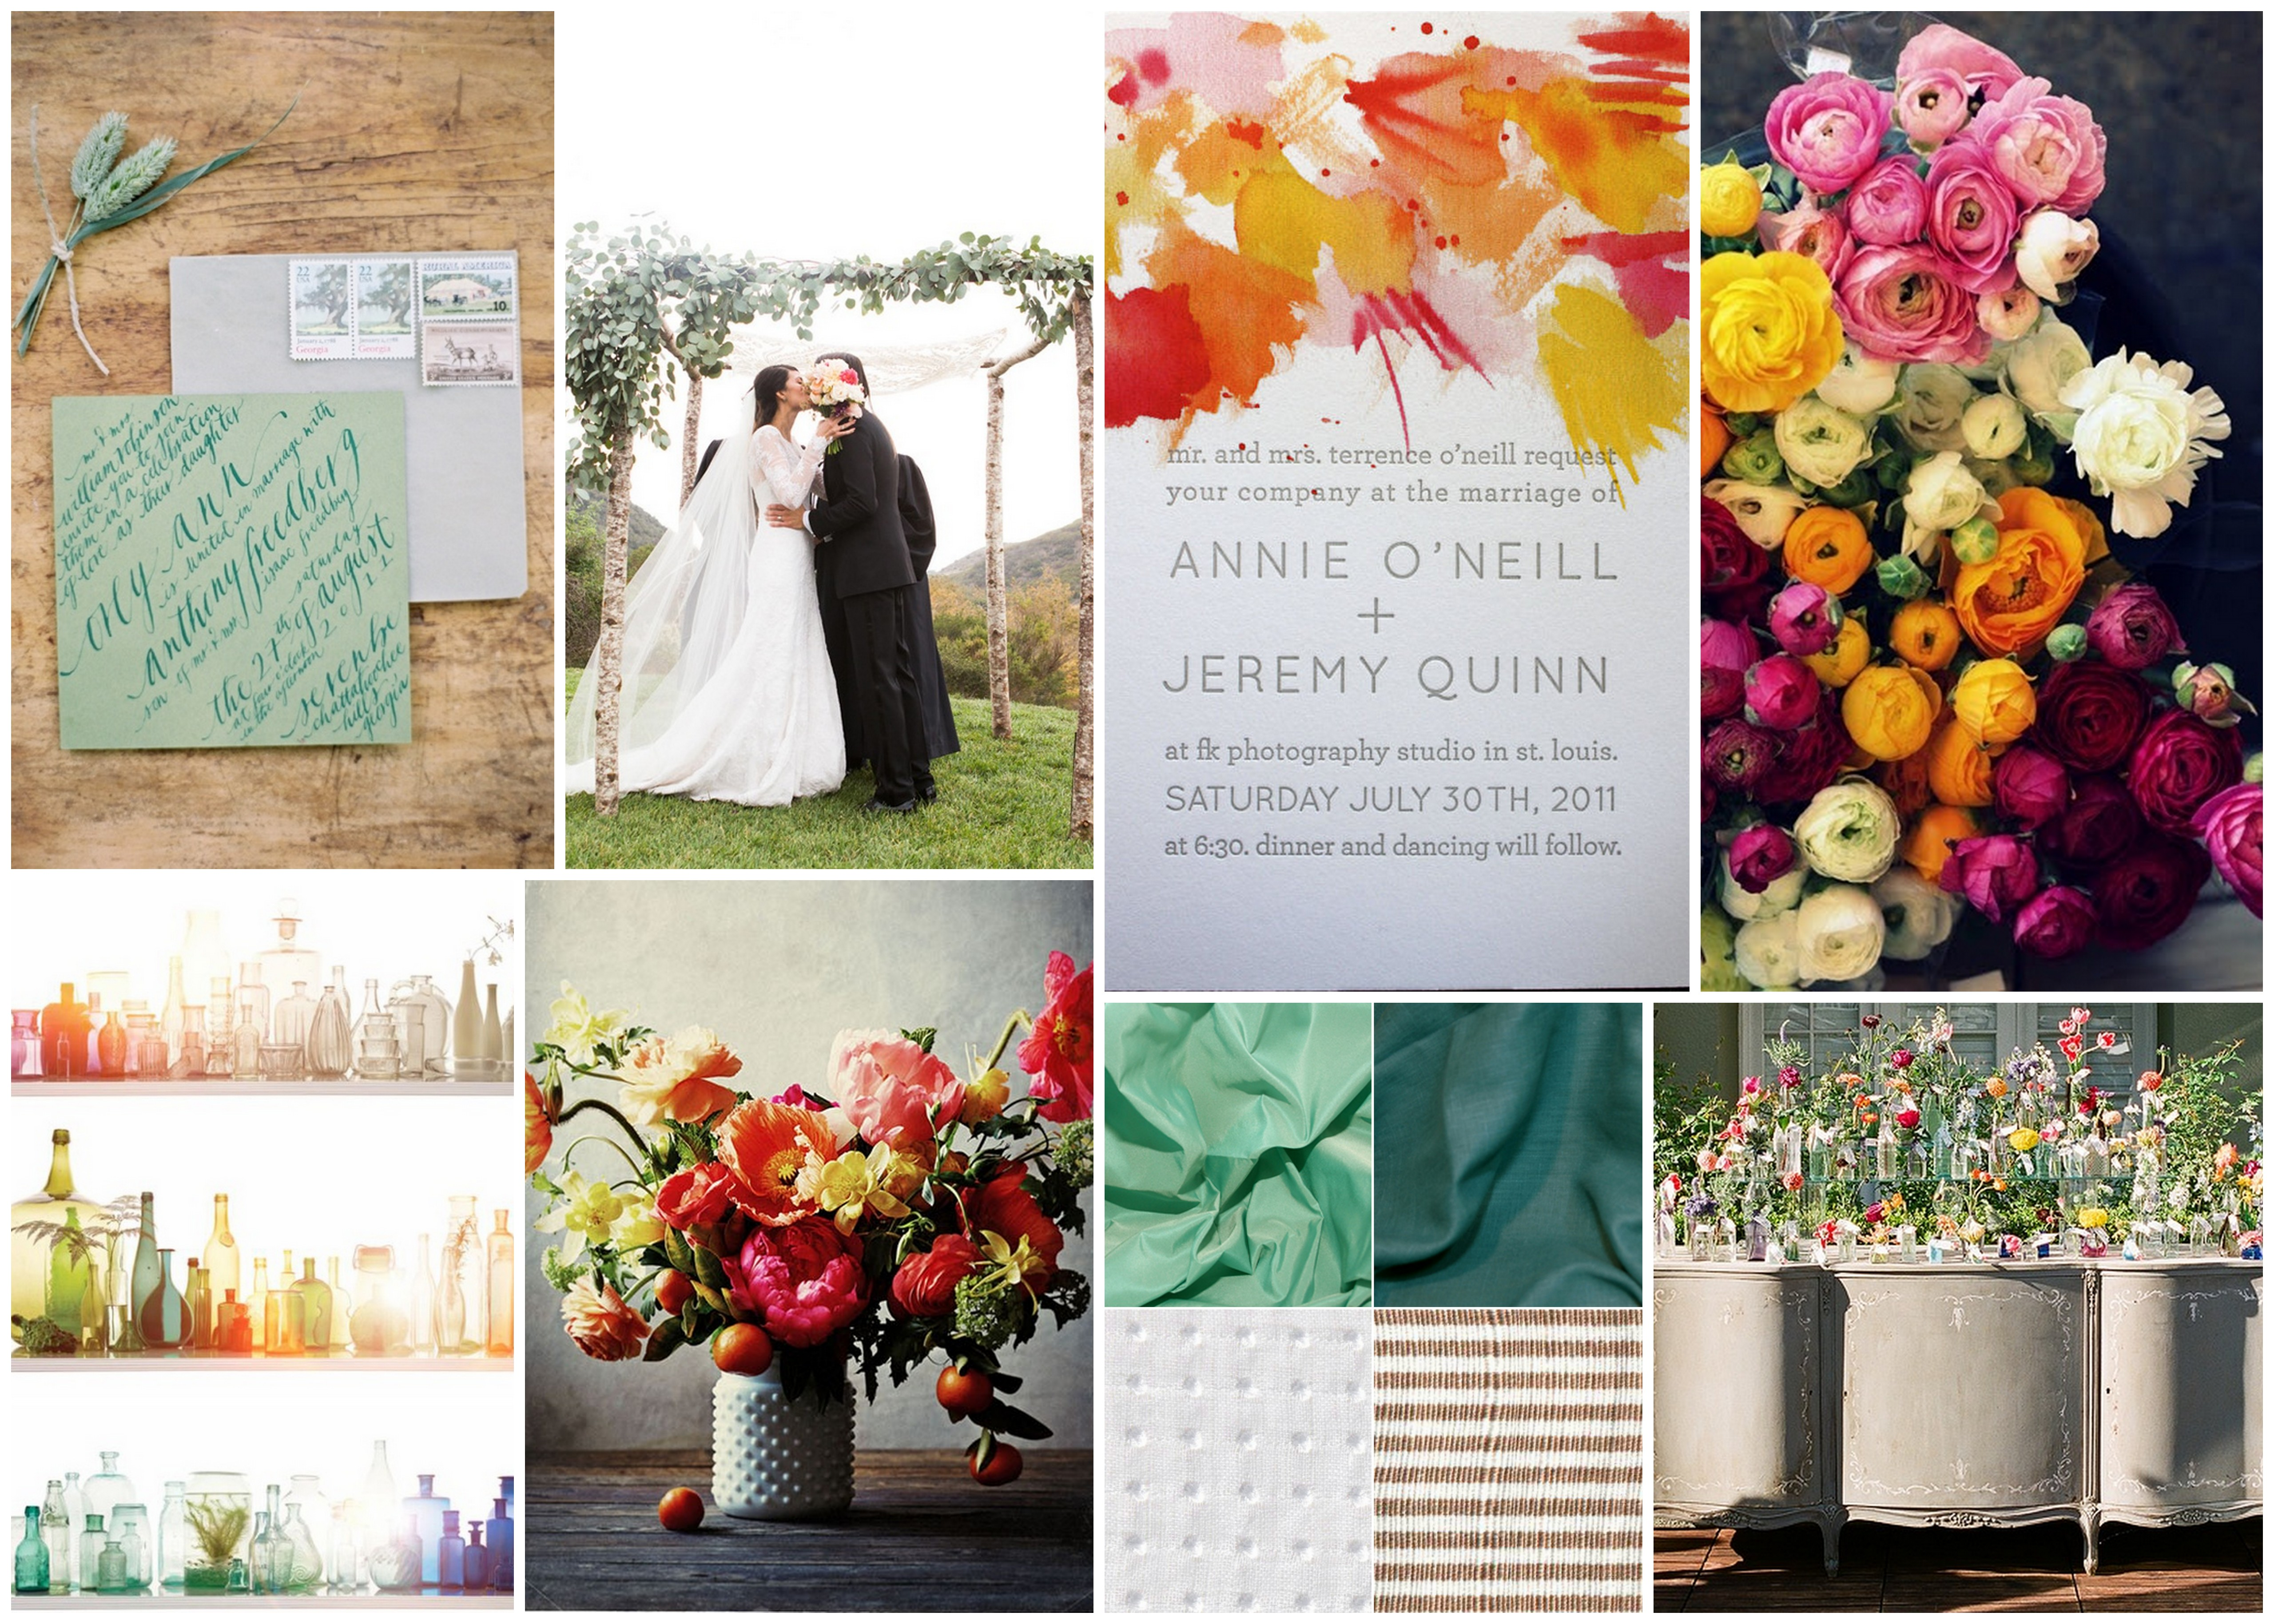 Summer Wedding Colors 2014 The wedding took place at